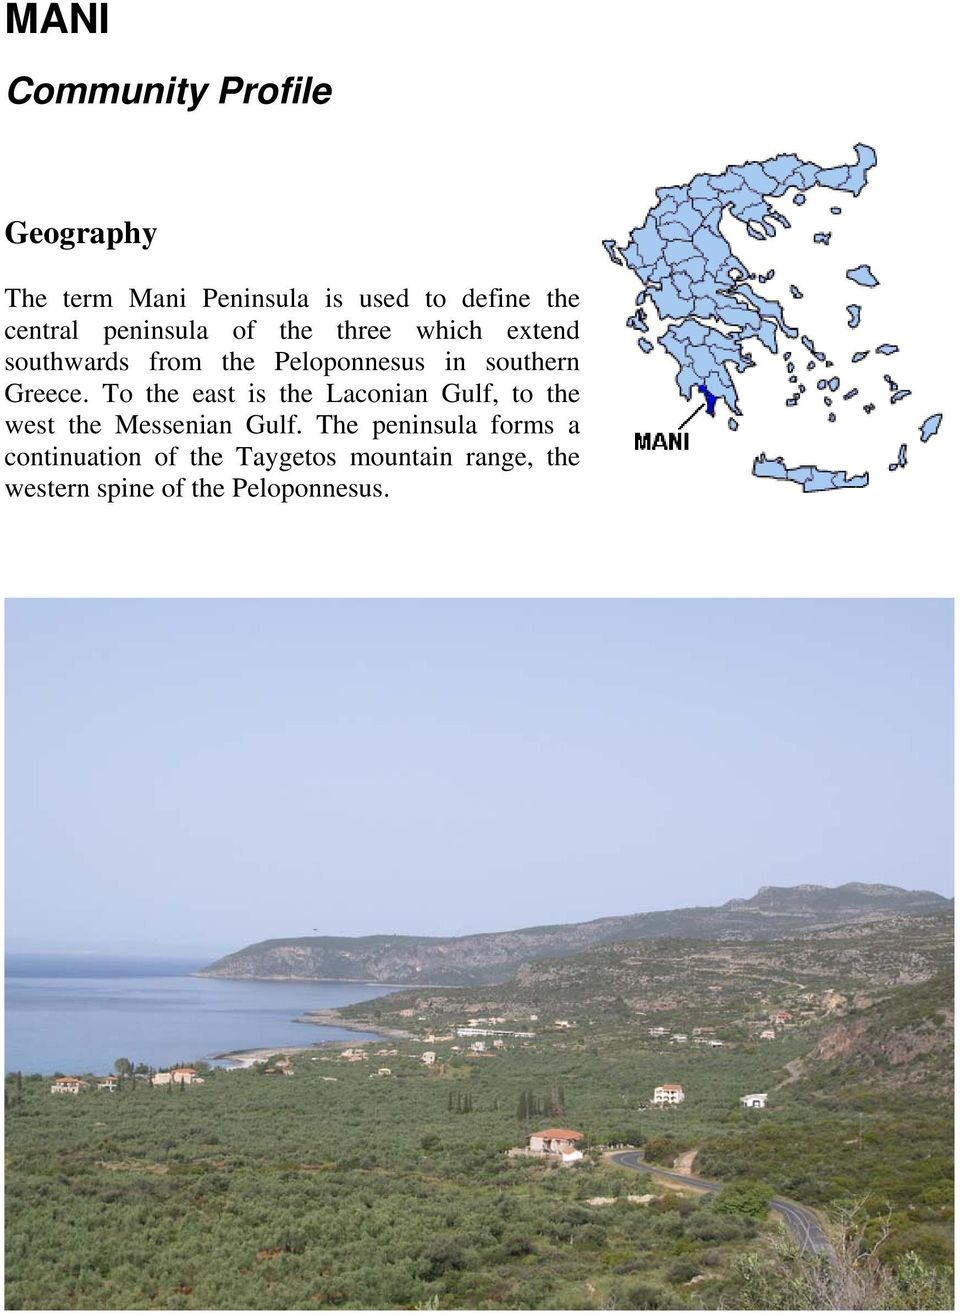 Greece. To the east is the Laconian Gulf, to the west the Messenian Gulf.